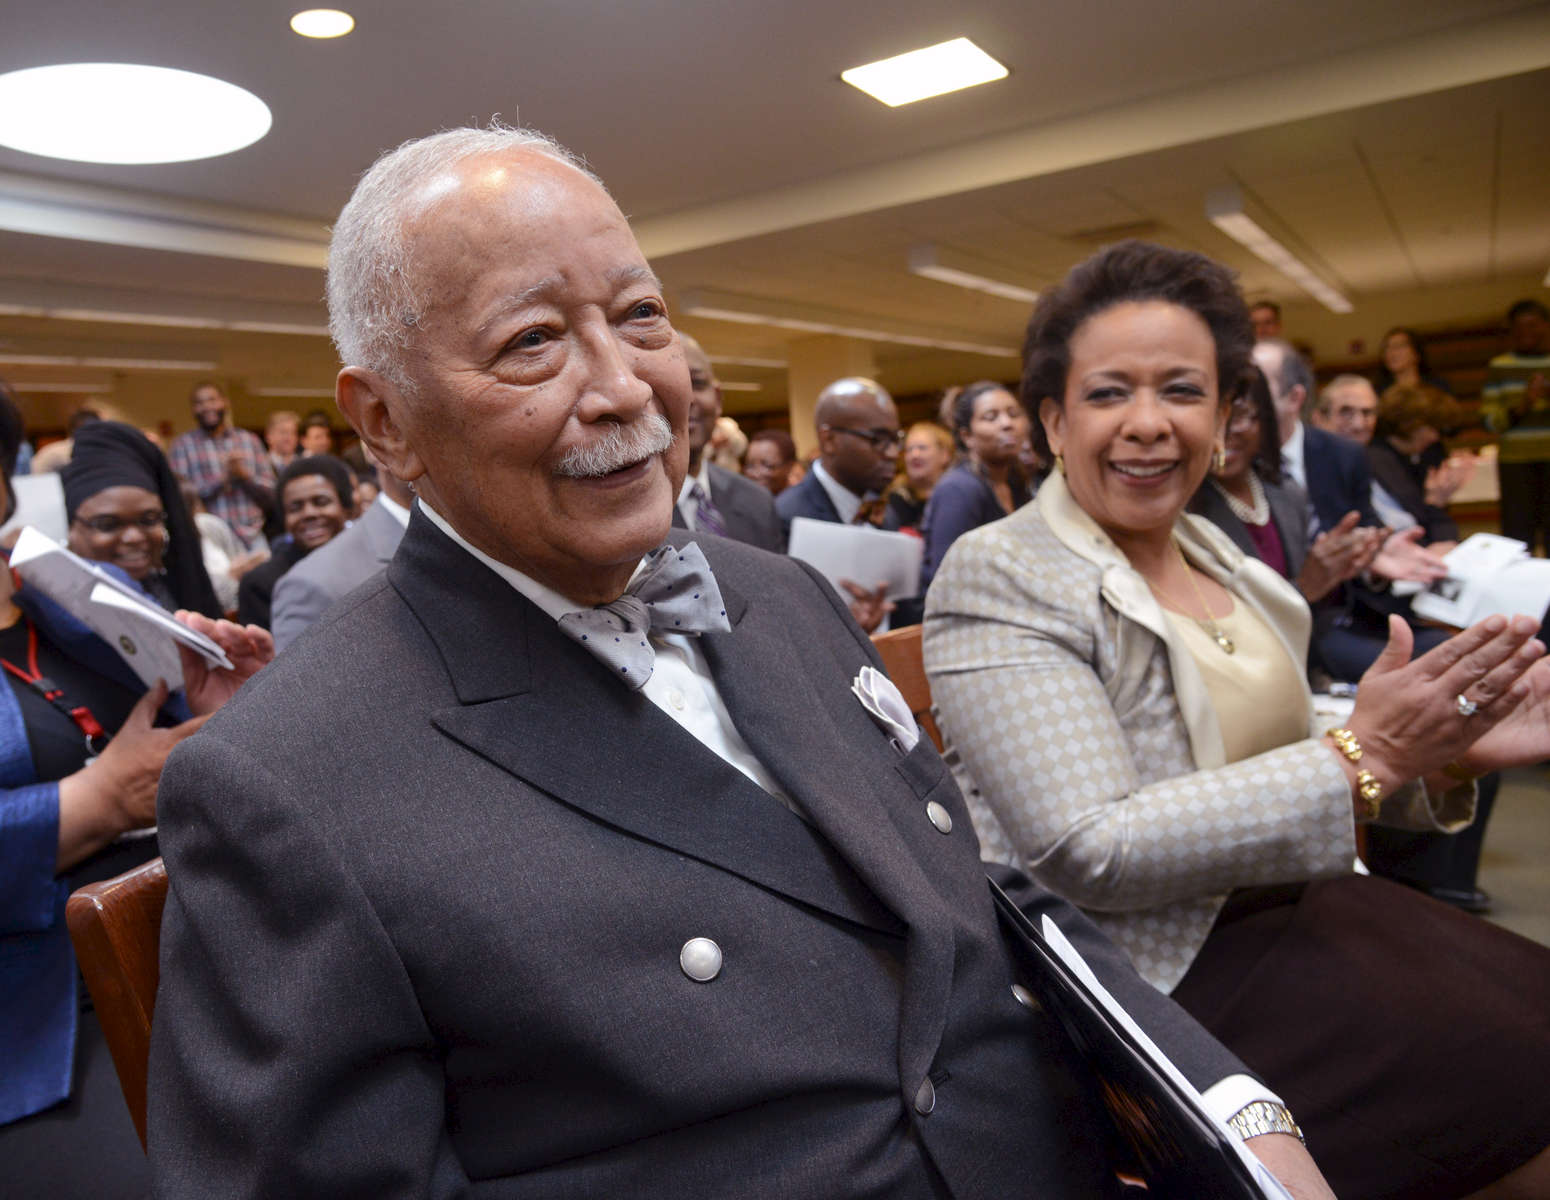 Former New York City Mayor David Dinkins is recognized at a Black History Month celebration at the Eastern District U.S. Attorney's Office; at right is Eastern District U.S. Attorney Loretta Lynch - February, 2015